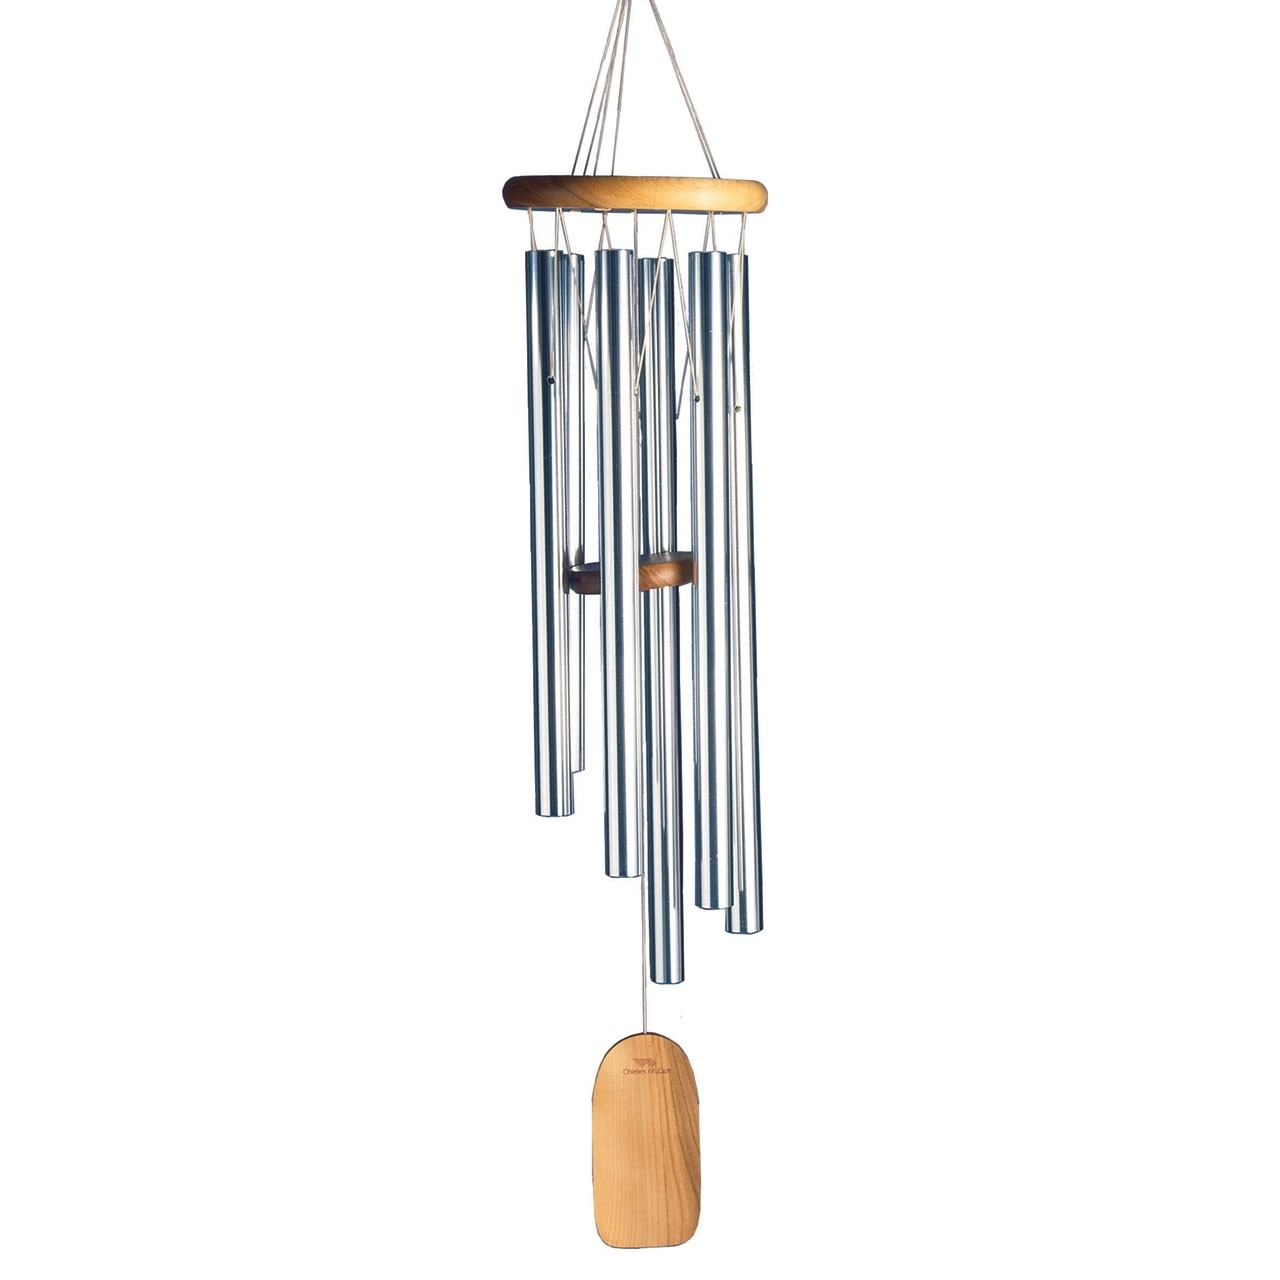 Klangspiel Chimes of Lun